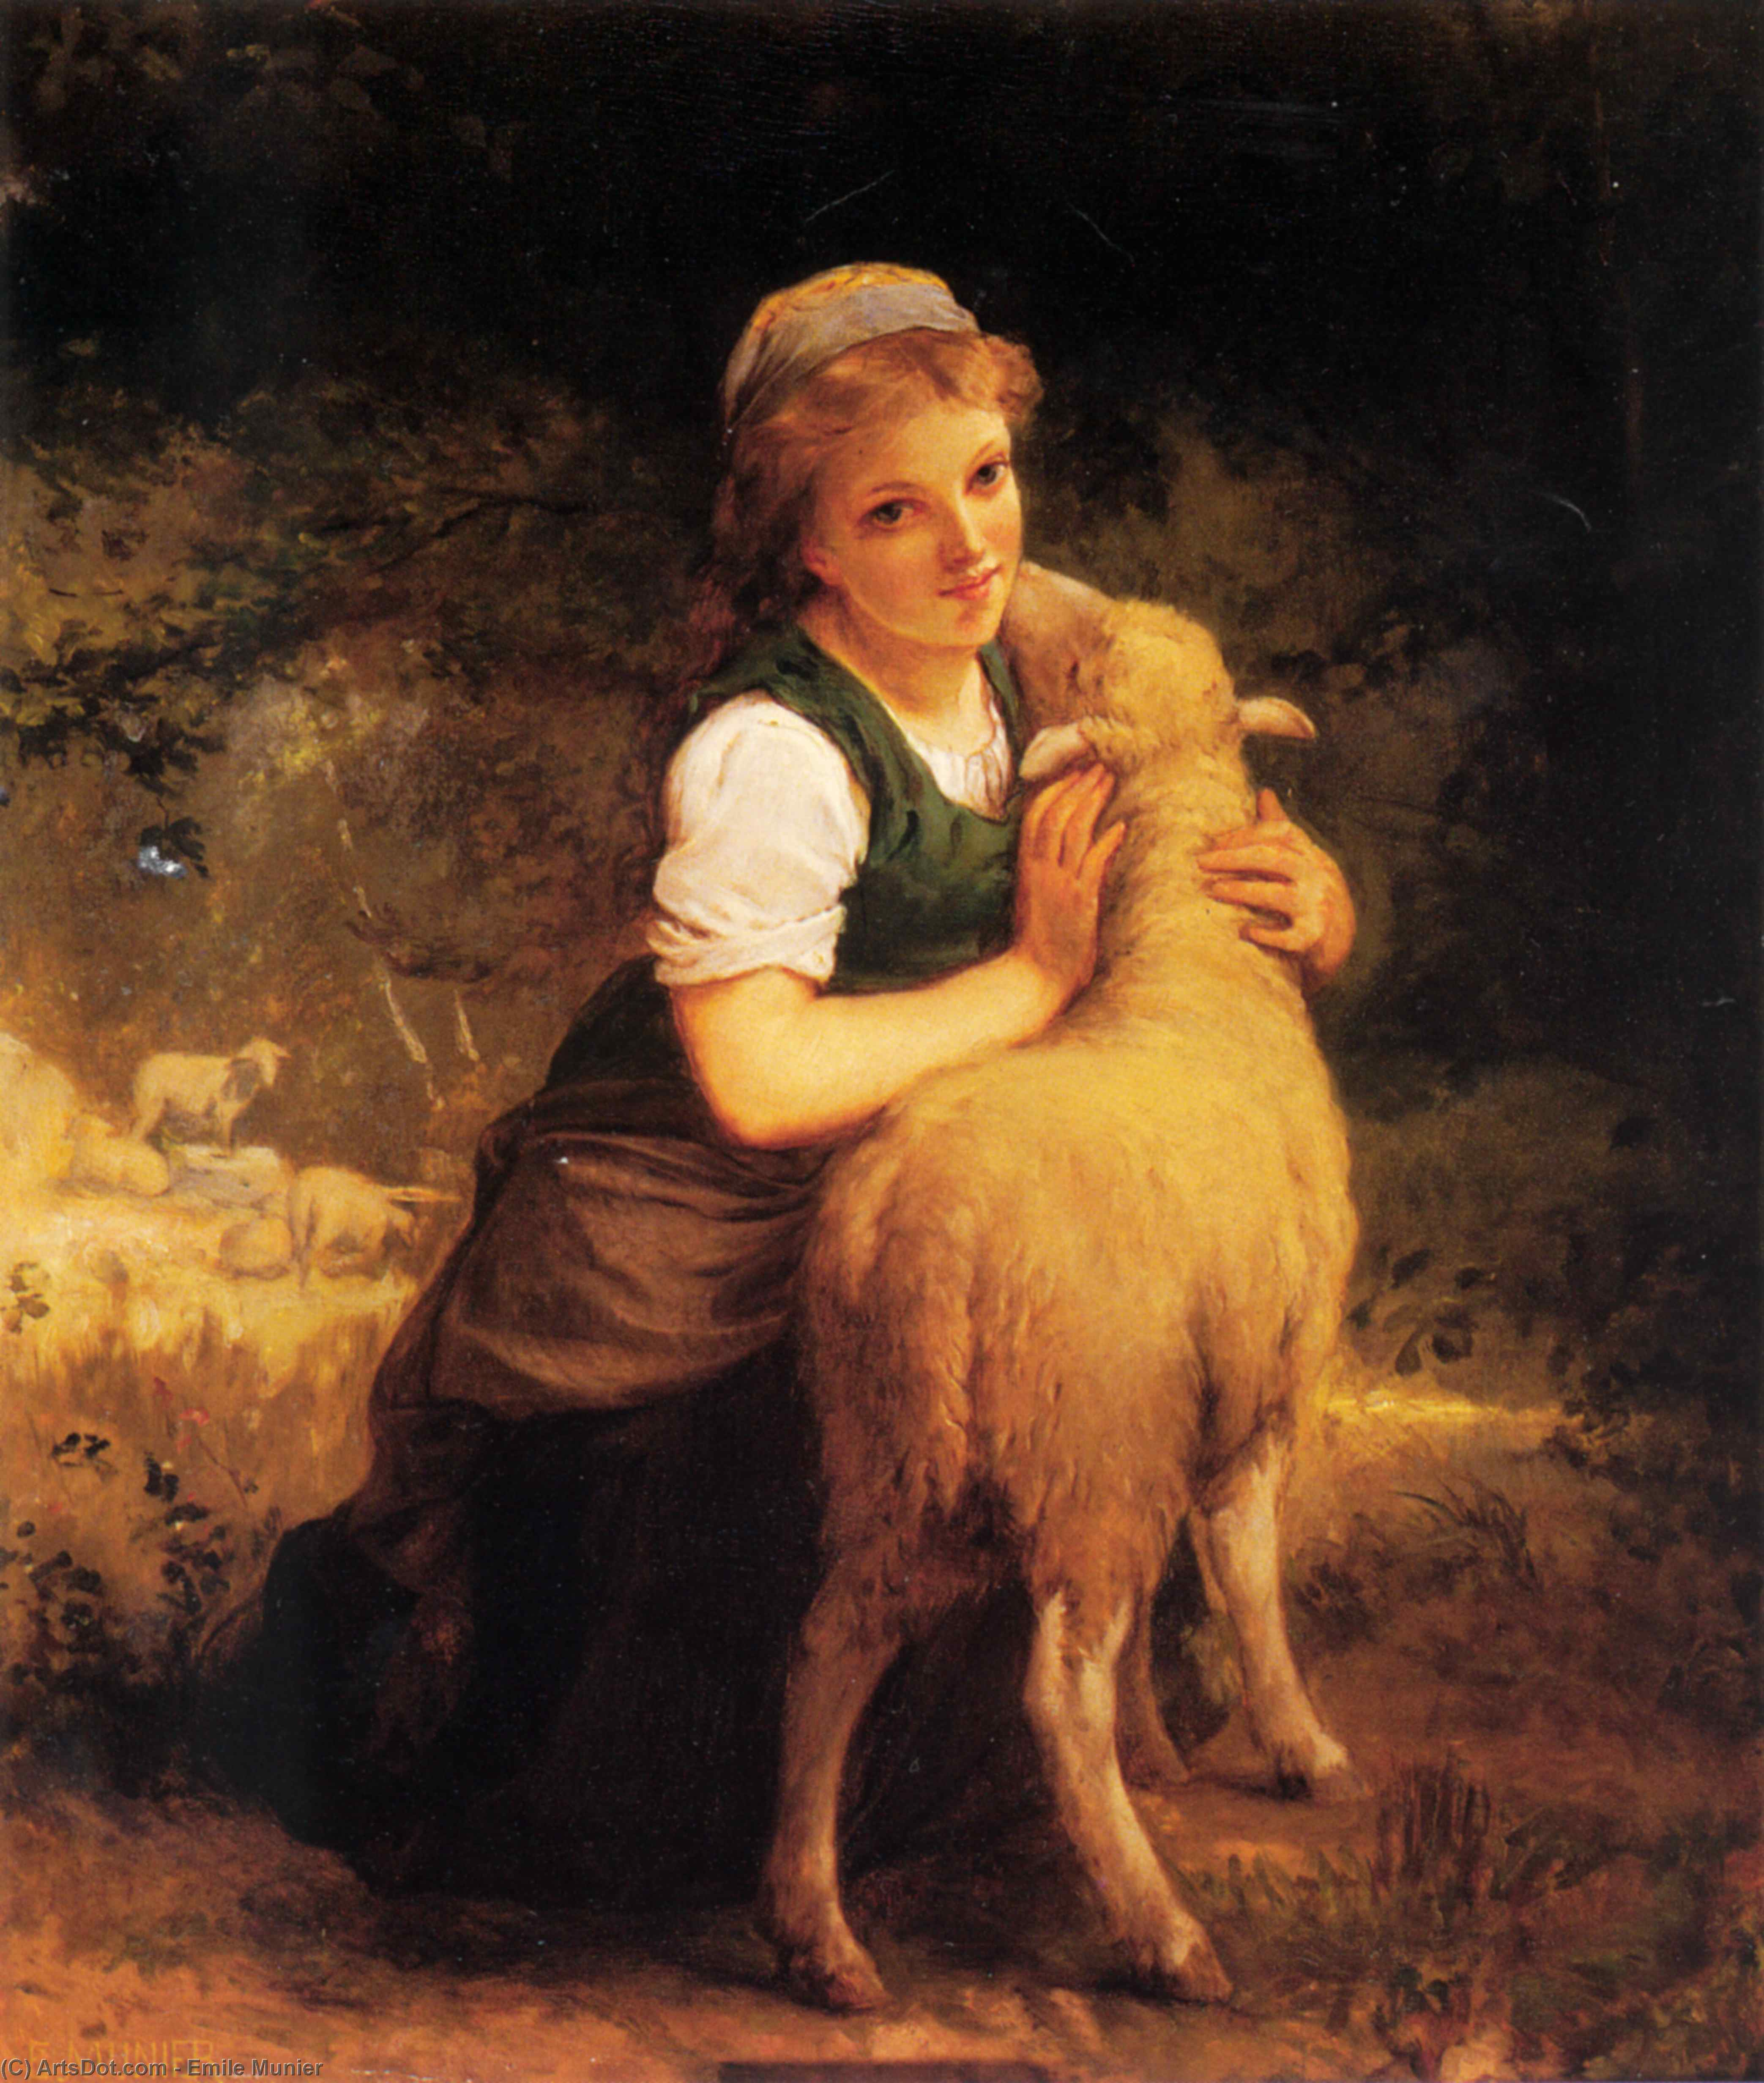 Young Girl with Lamb by Emile Munier (1840-1895, France)